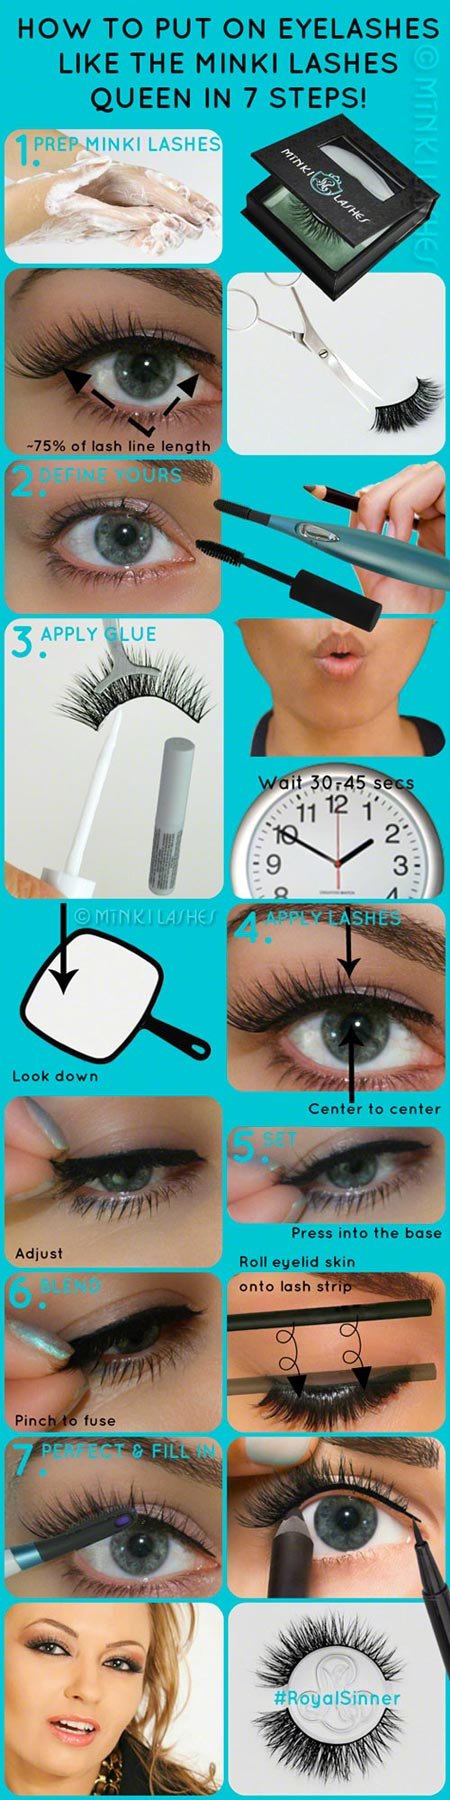 How to Put on Eyelashes by Minki Lashes